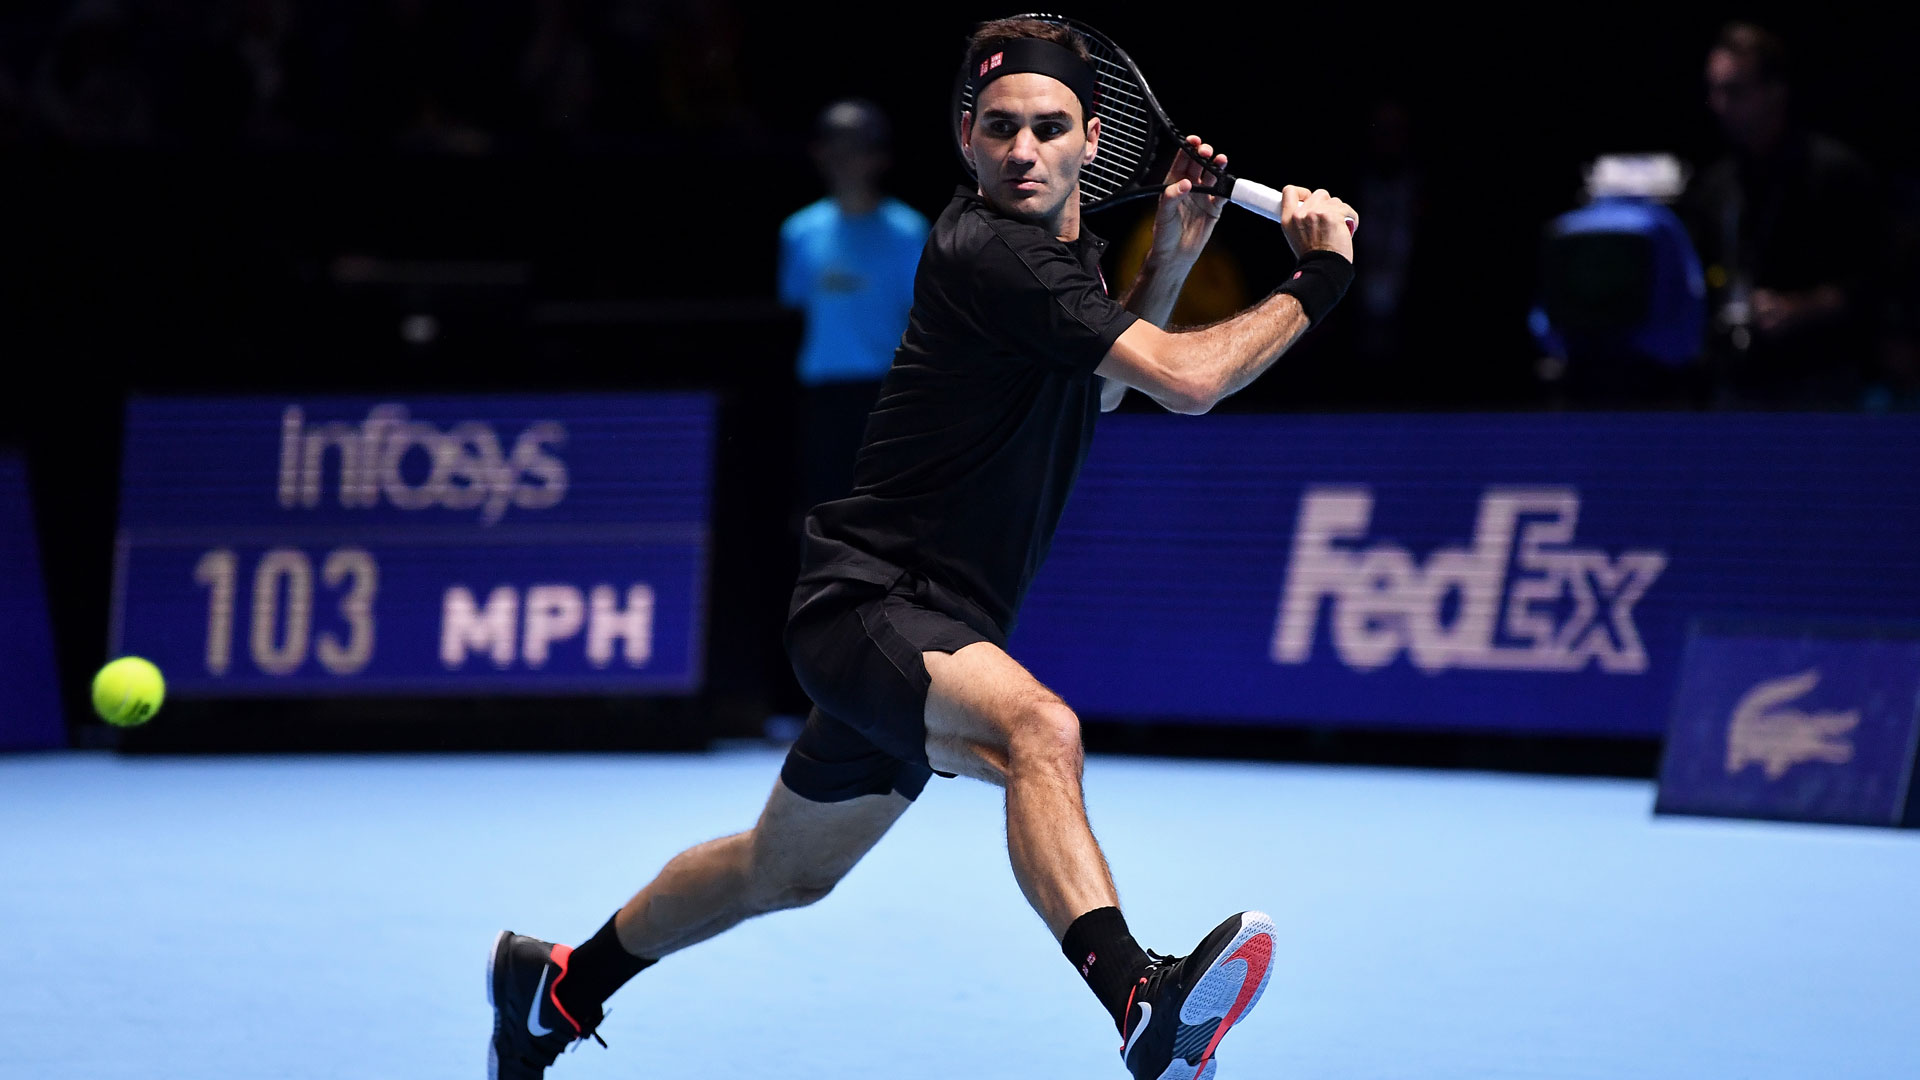 Roger Federer saves all three break points en route to beating Matteo Berrettini at the Nitto ATP Finals.